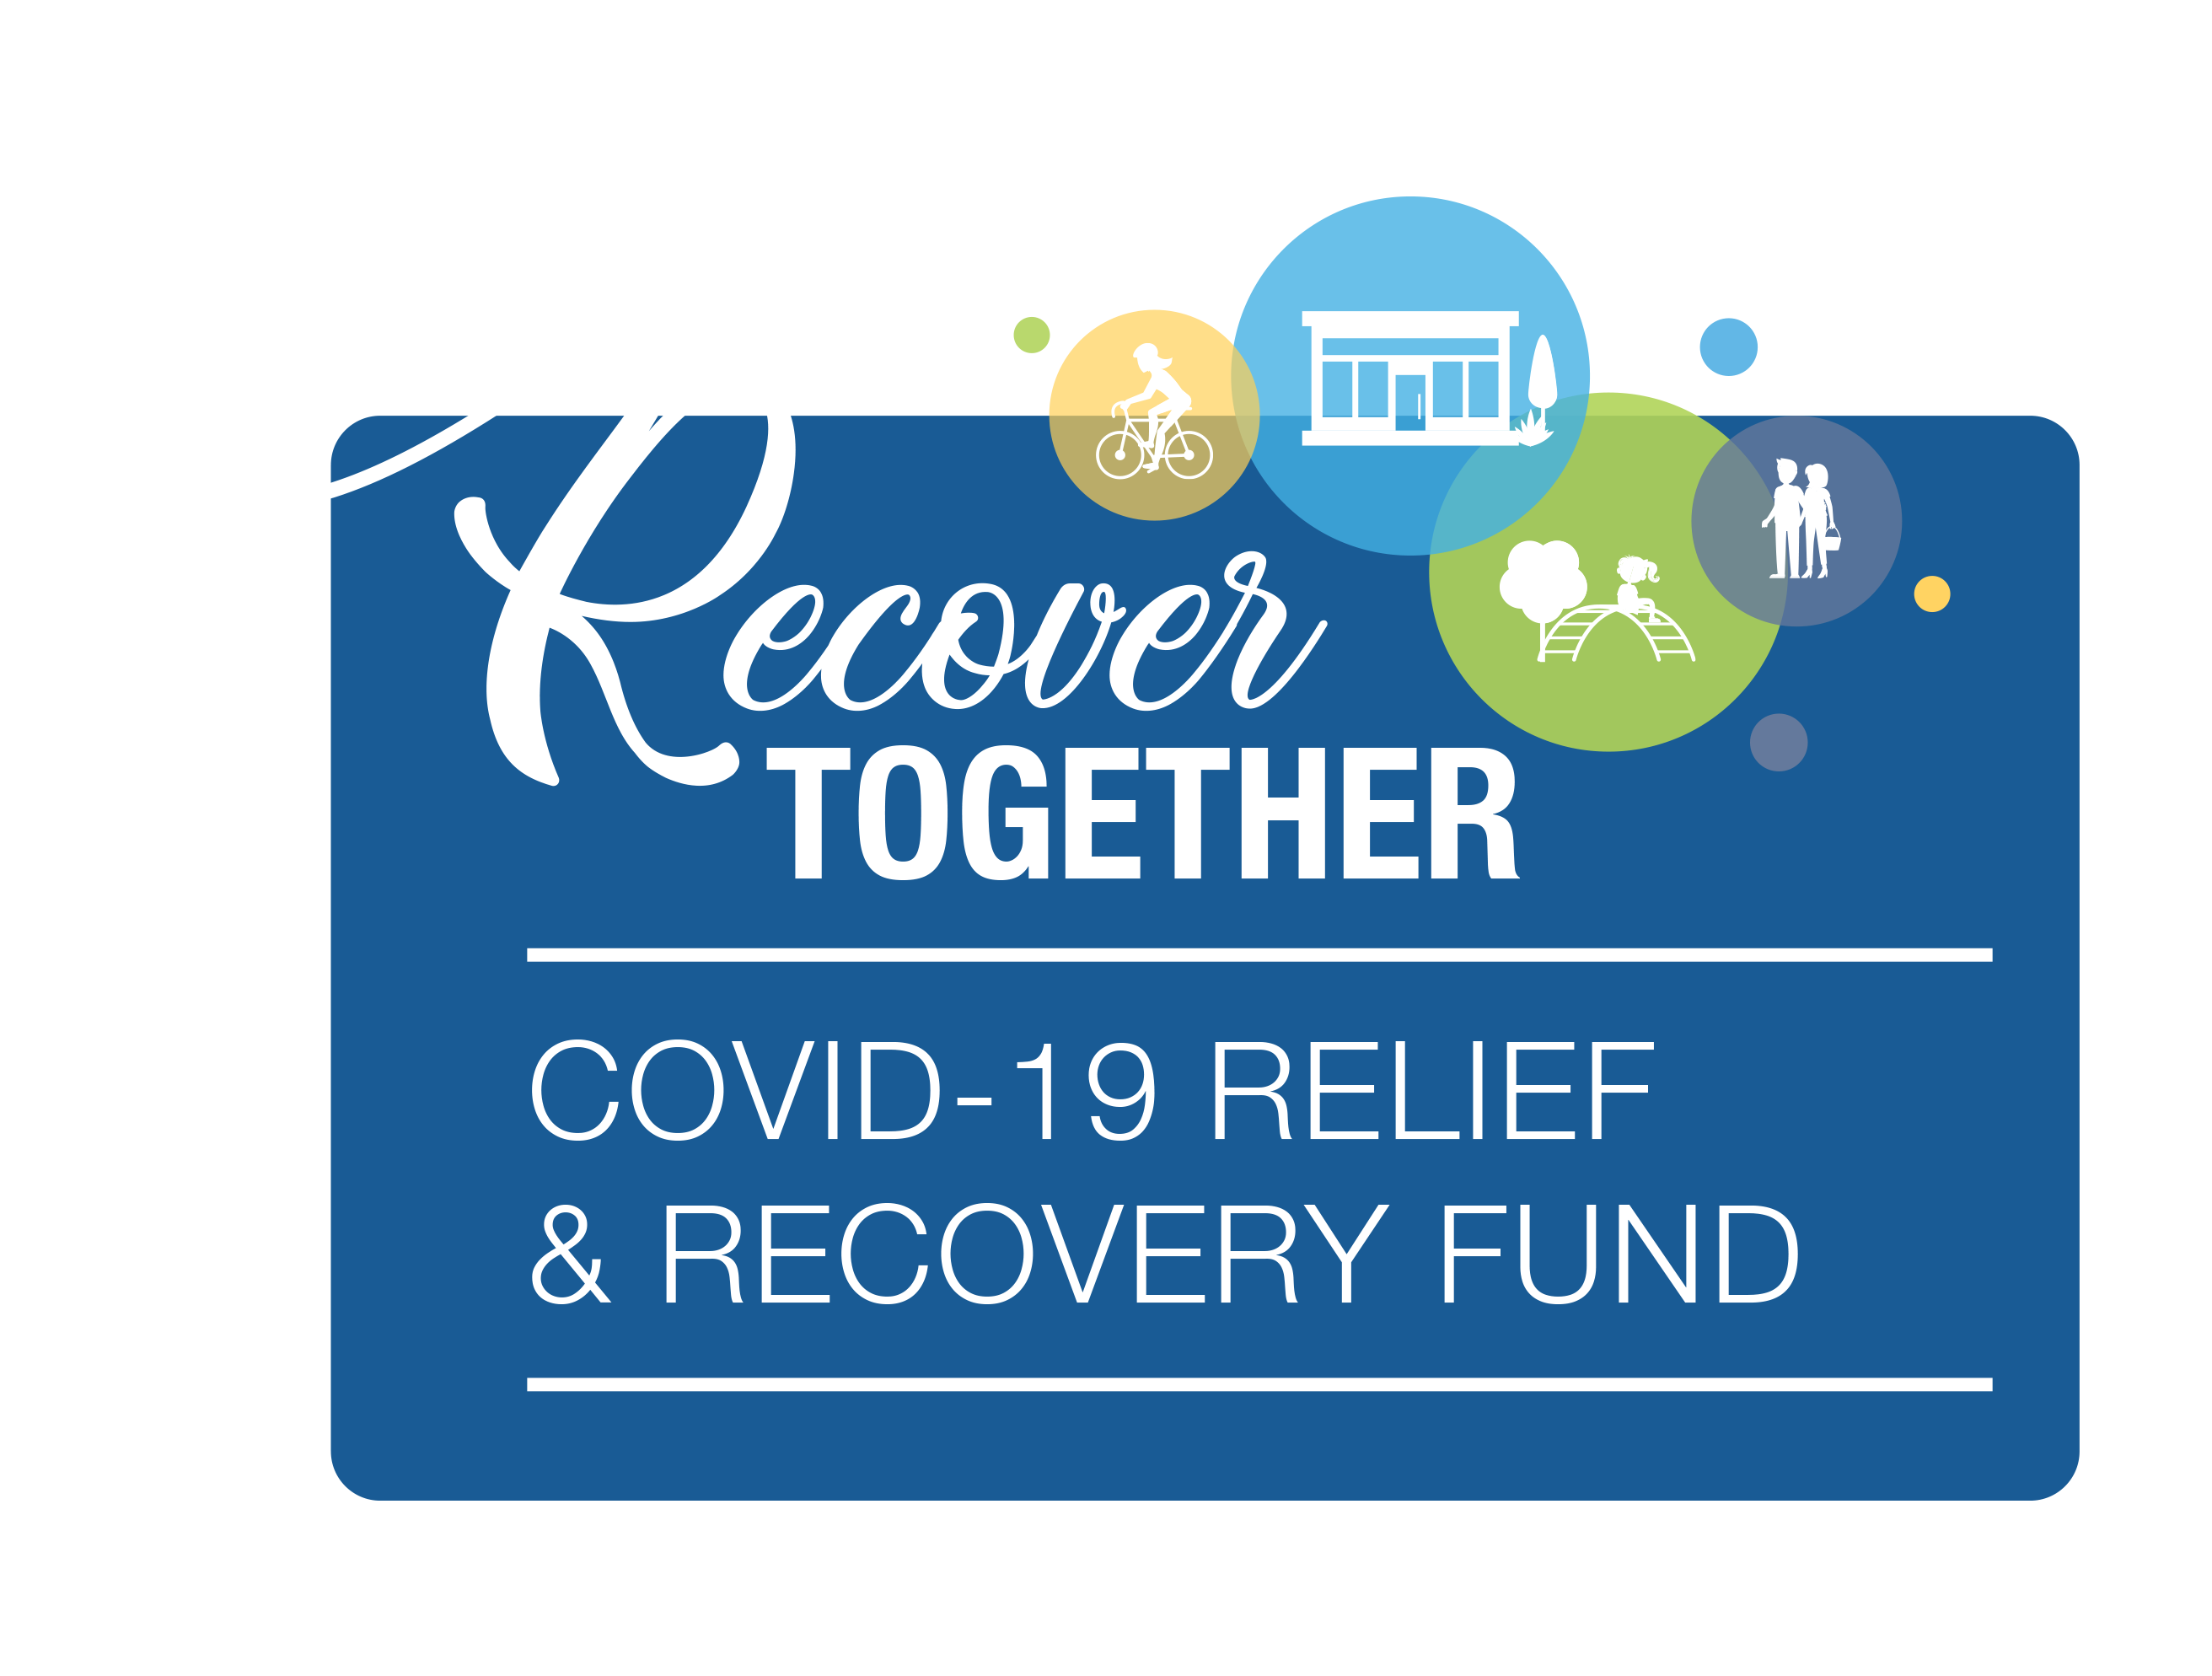 Recover Together - COVID-19 Relief & Recovery Fund